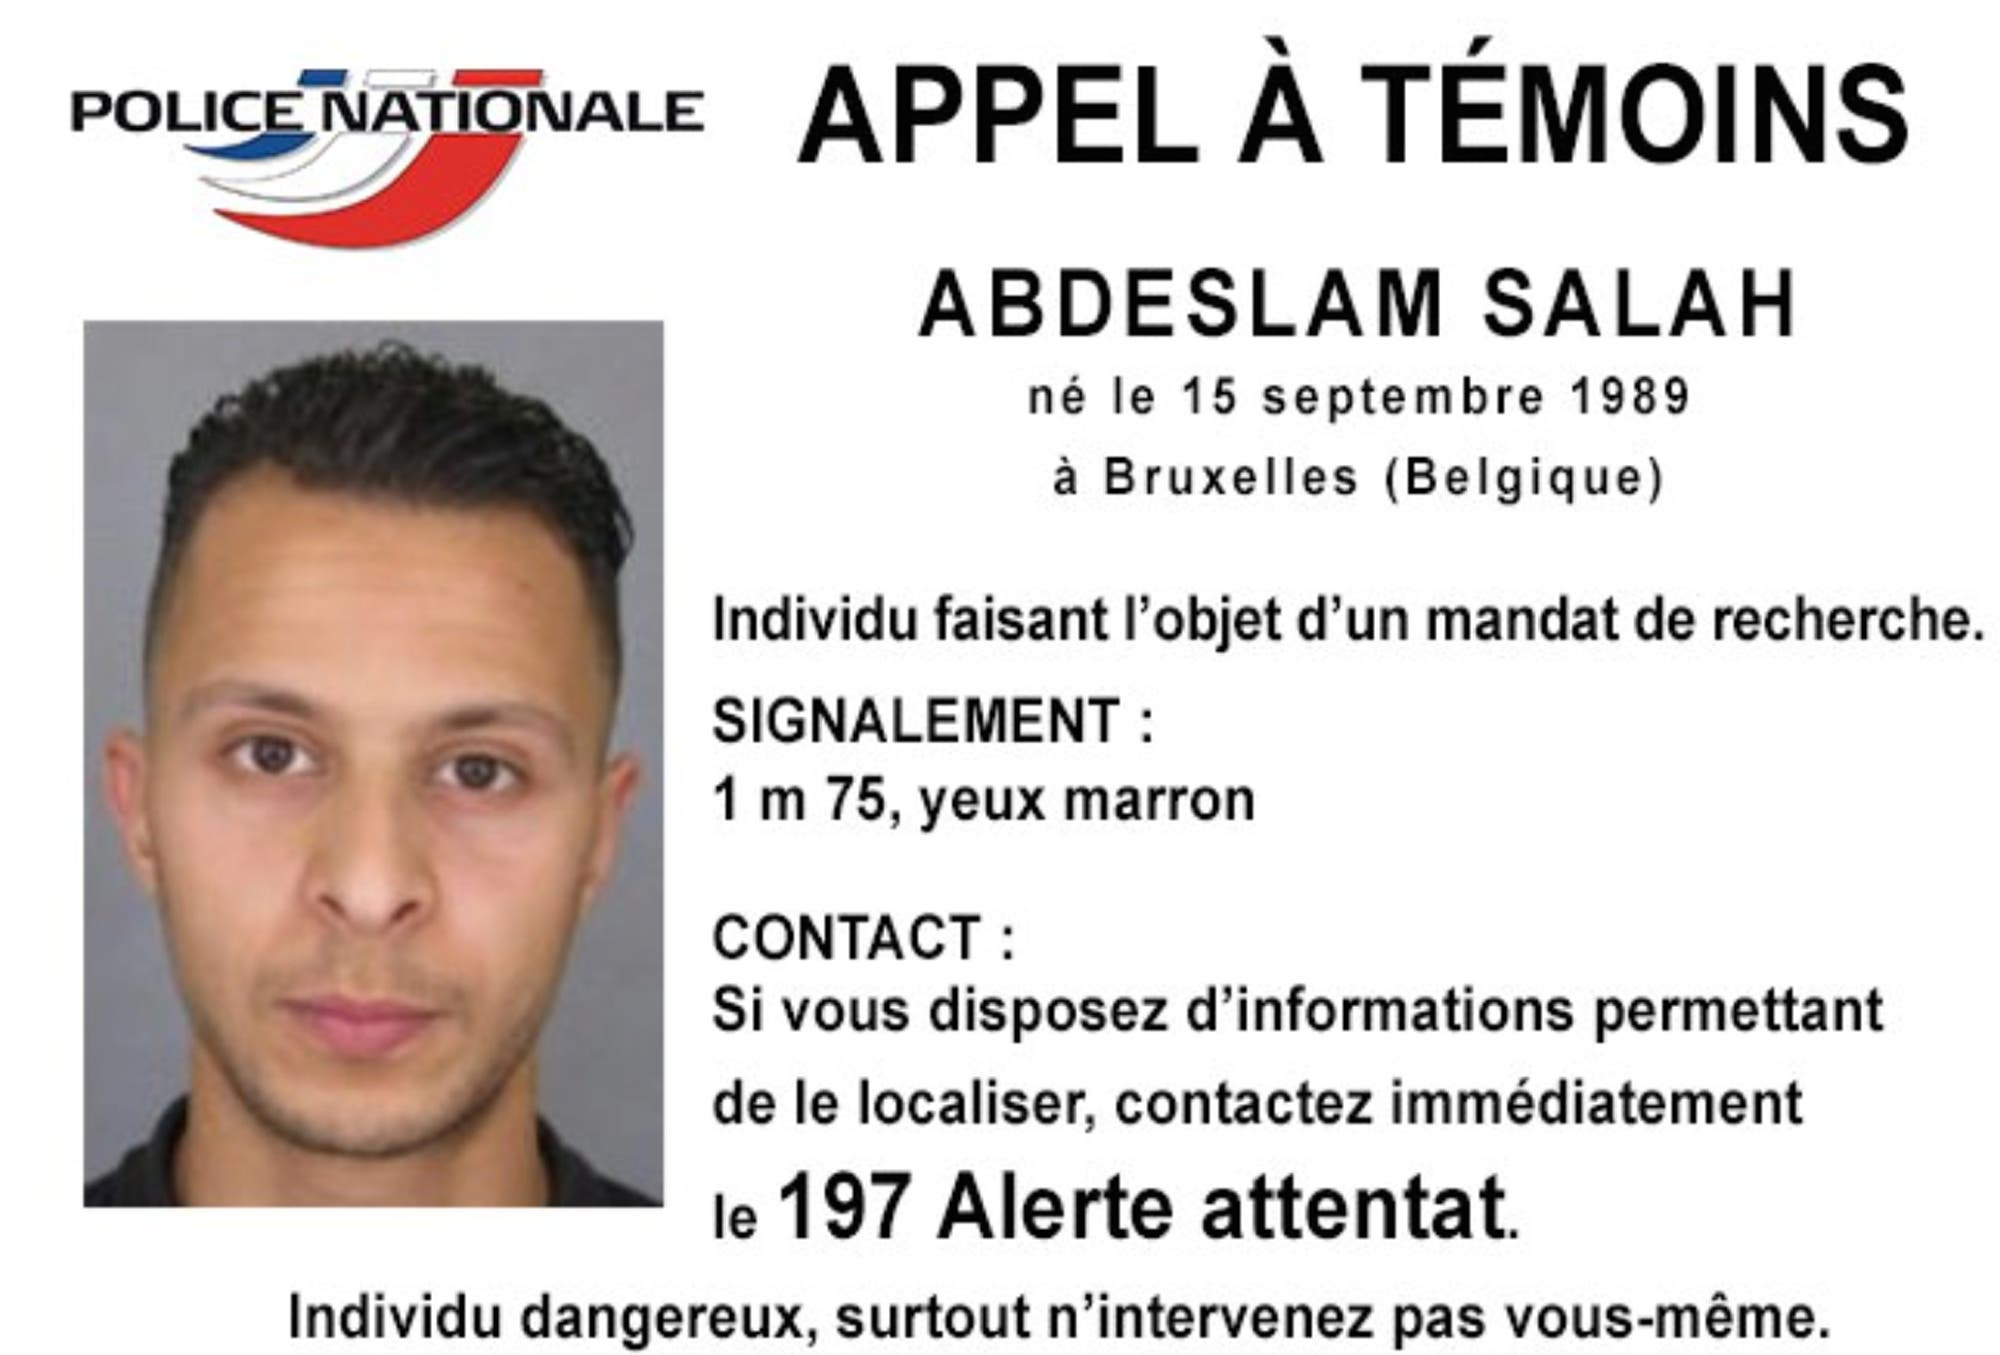 This undated file photo released Friday, Nov. 13, 2015, by French Police shows 26-year old Salah Abdeslam, who is wanted by police in connection with recent terror attacks in Paris. (AP)